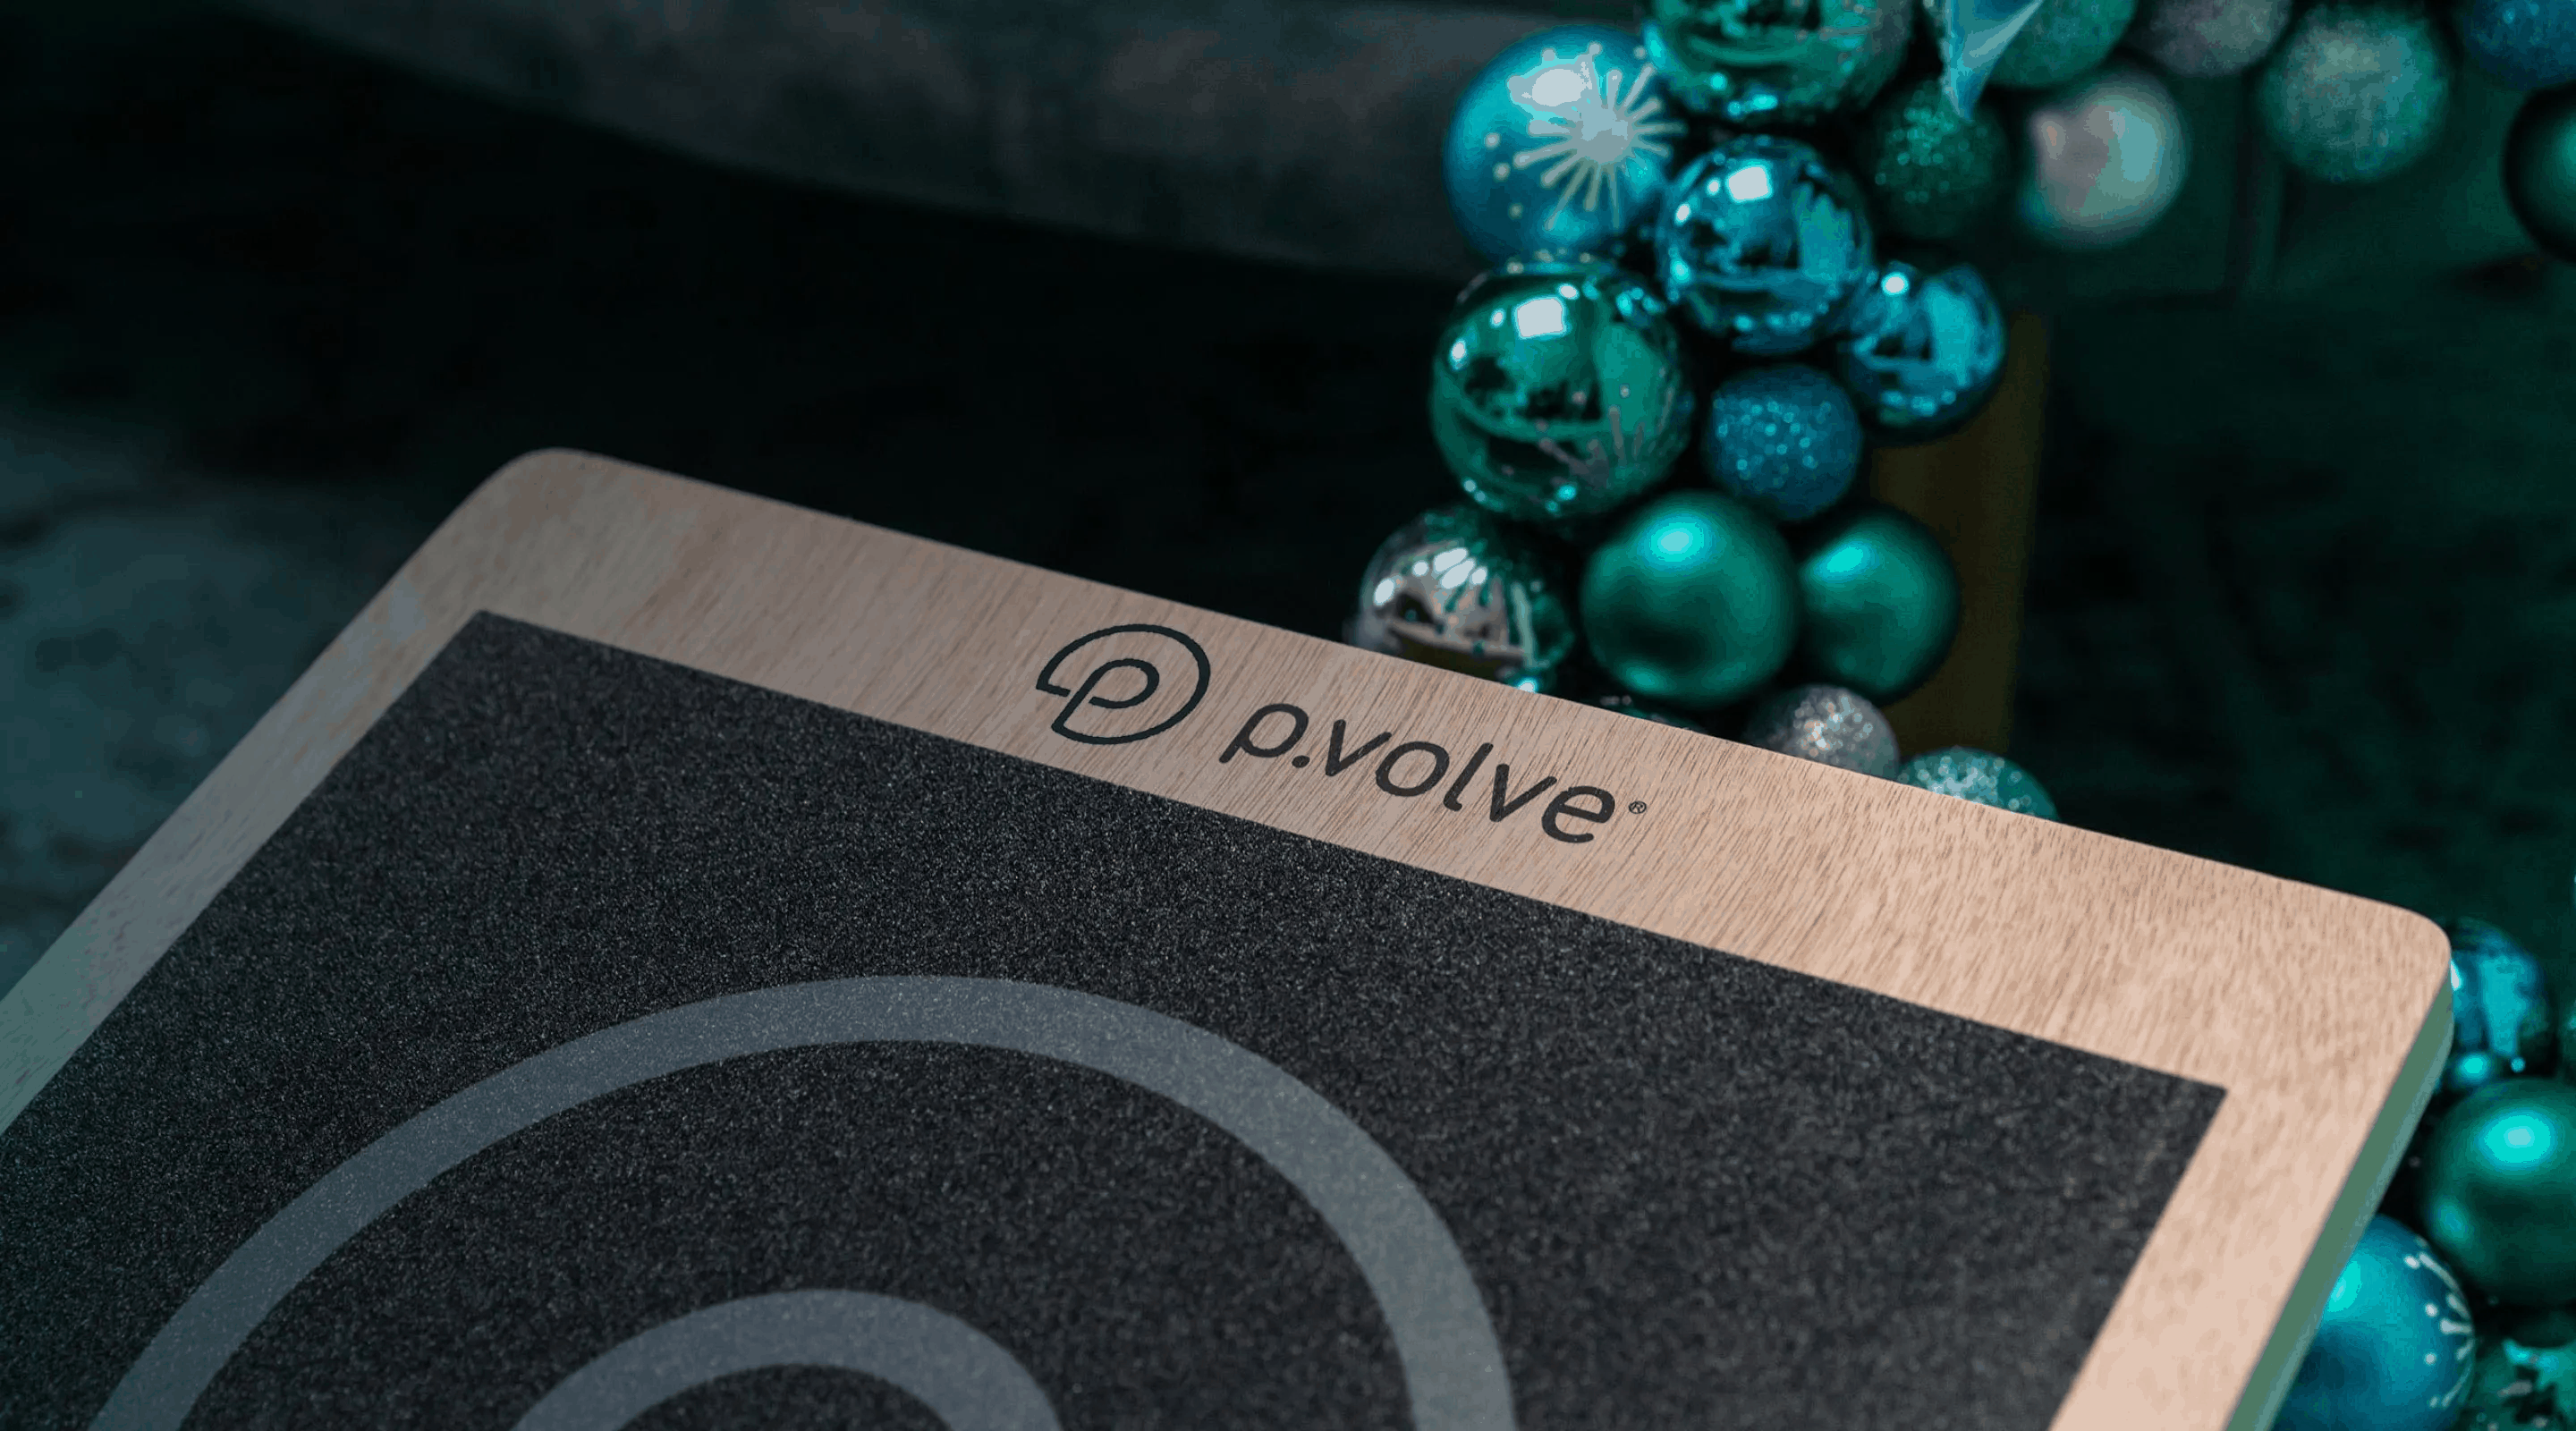 P.volve Cyber Monday Coupon: Get 30% Off EVERYTHING!